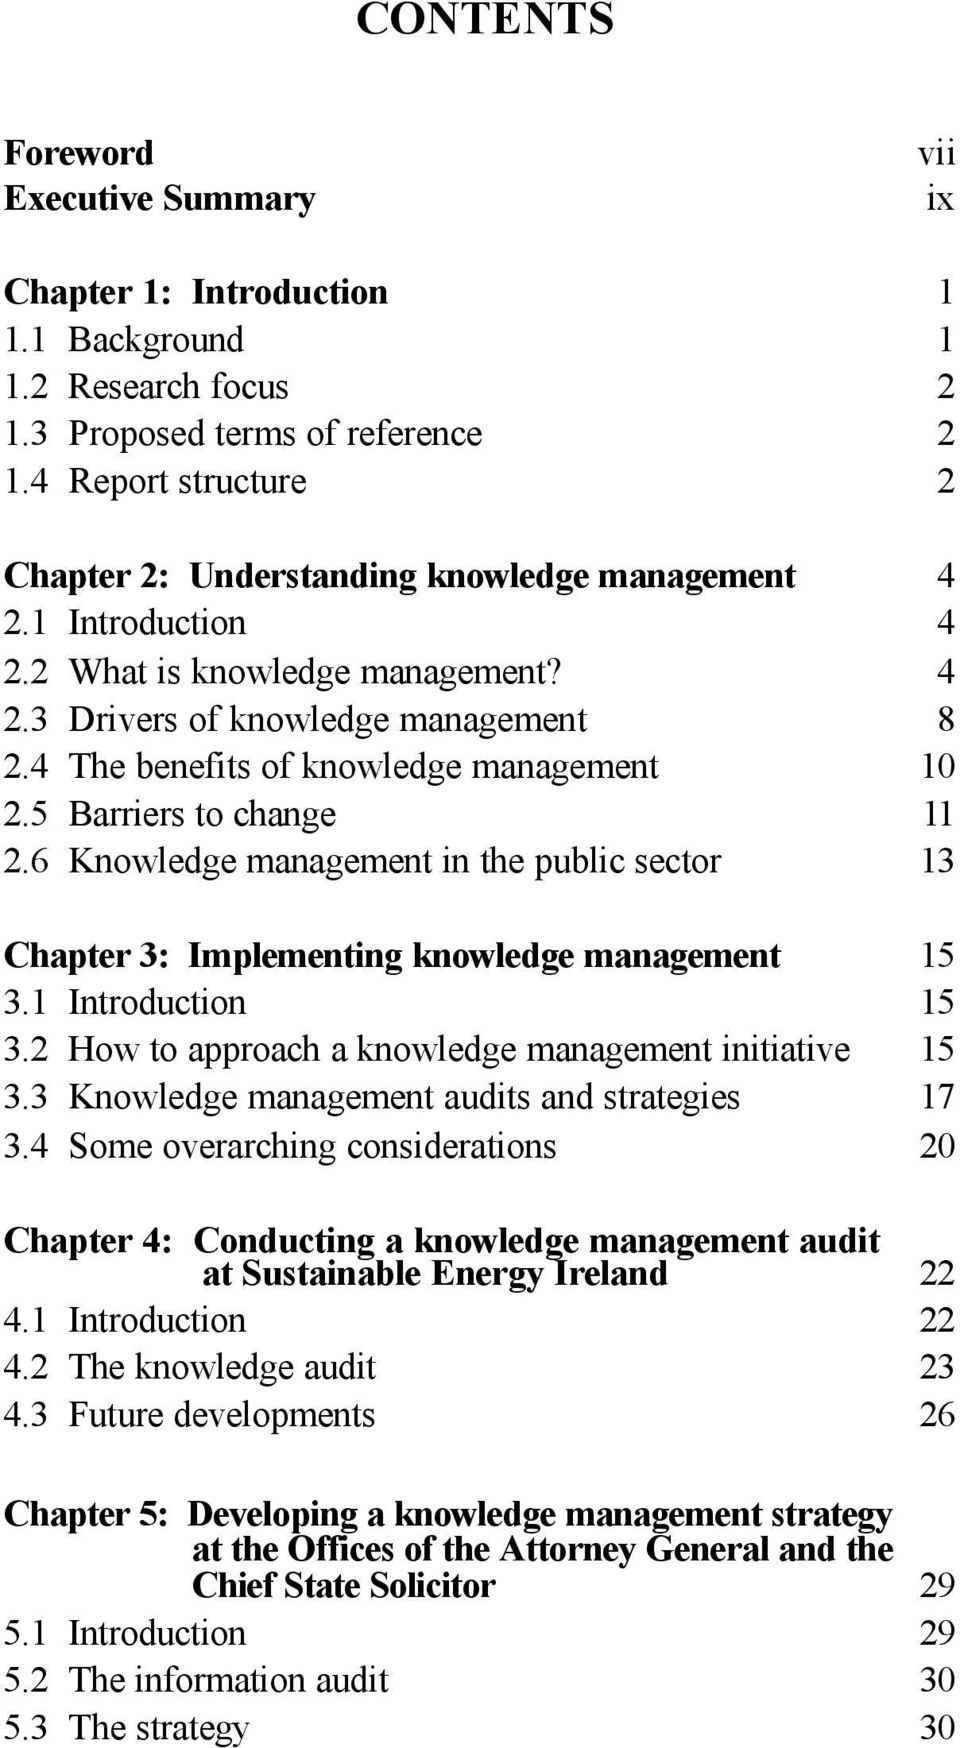 4 The benefits of knowledge management 10 2.5 Barriers to change 11 2.6 Knowledge management in the public sector 13 Chapter 3: Implementing knowledge management 15 3.1 Introduction 15 3.